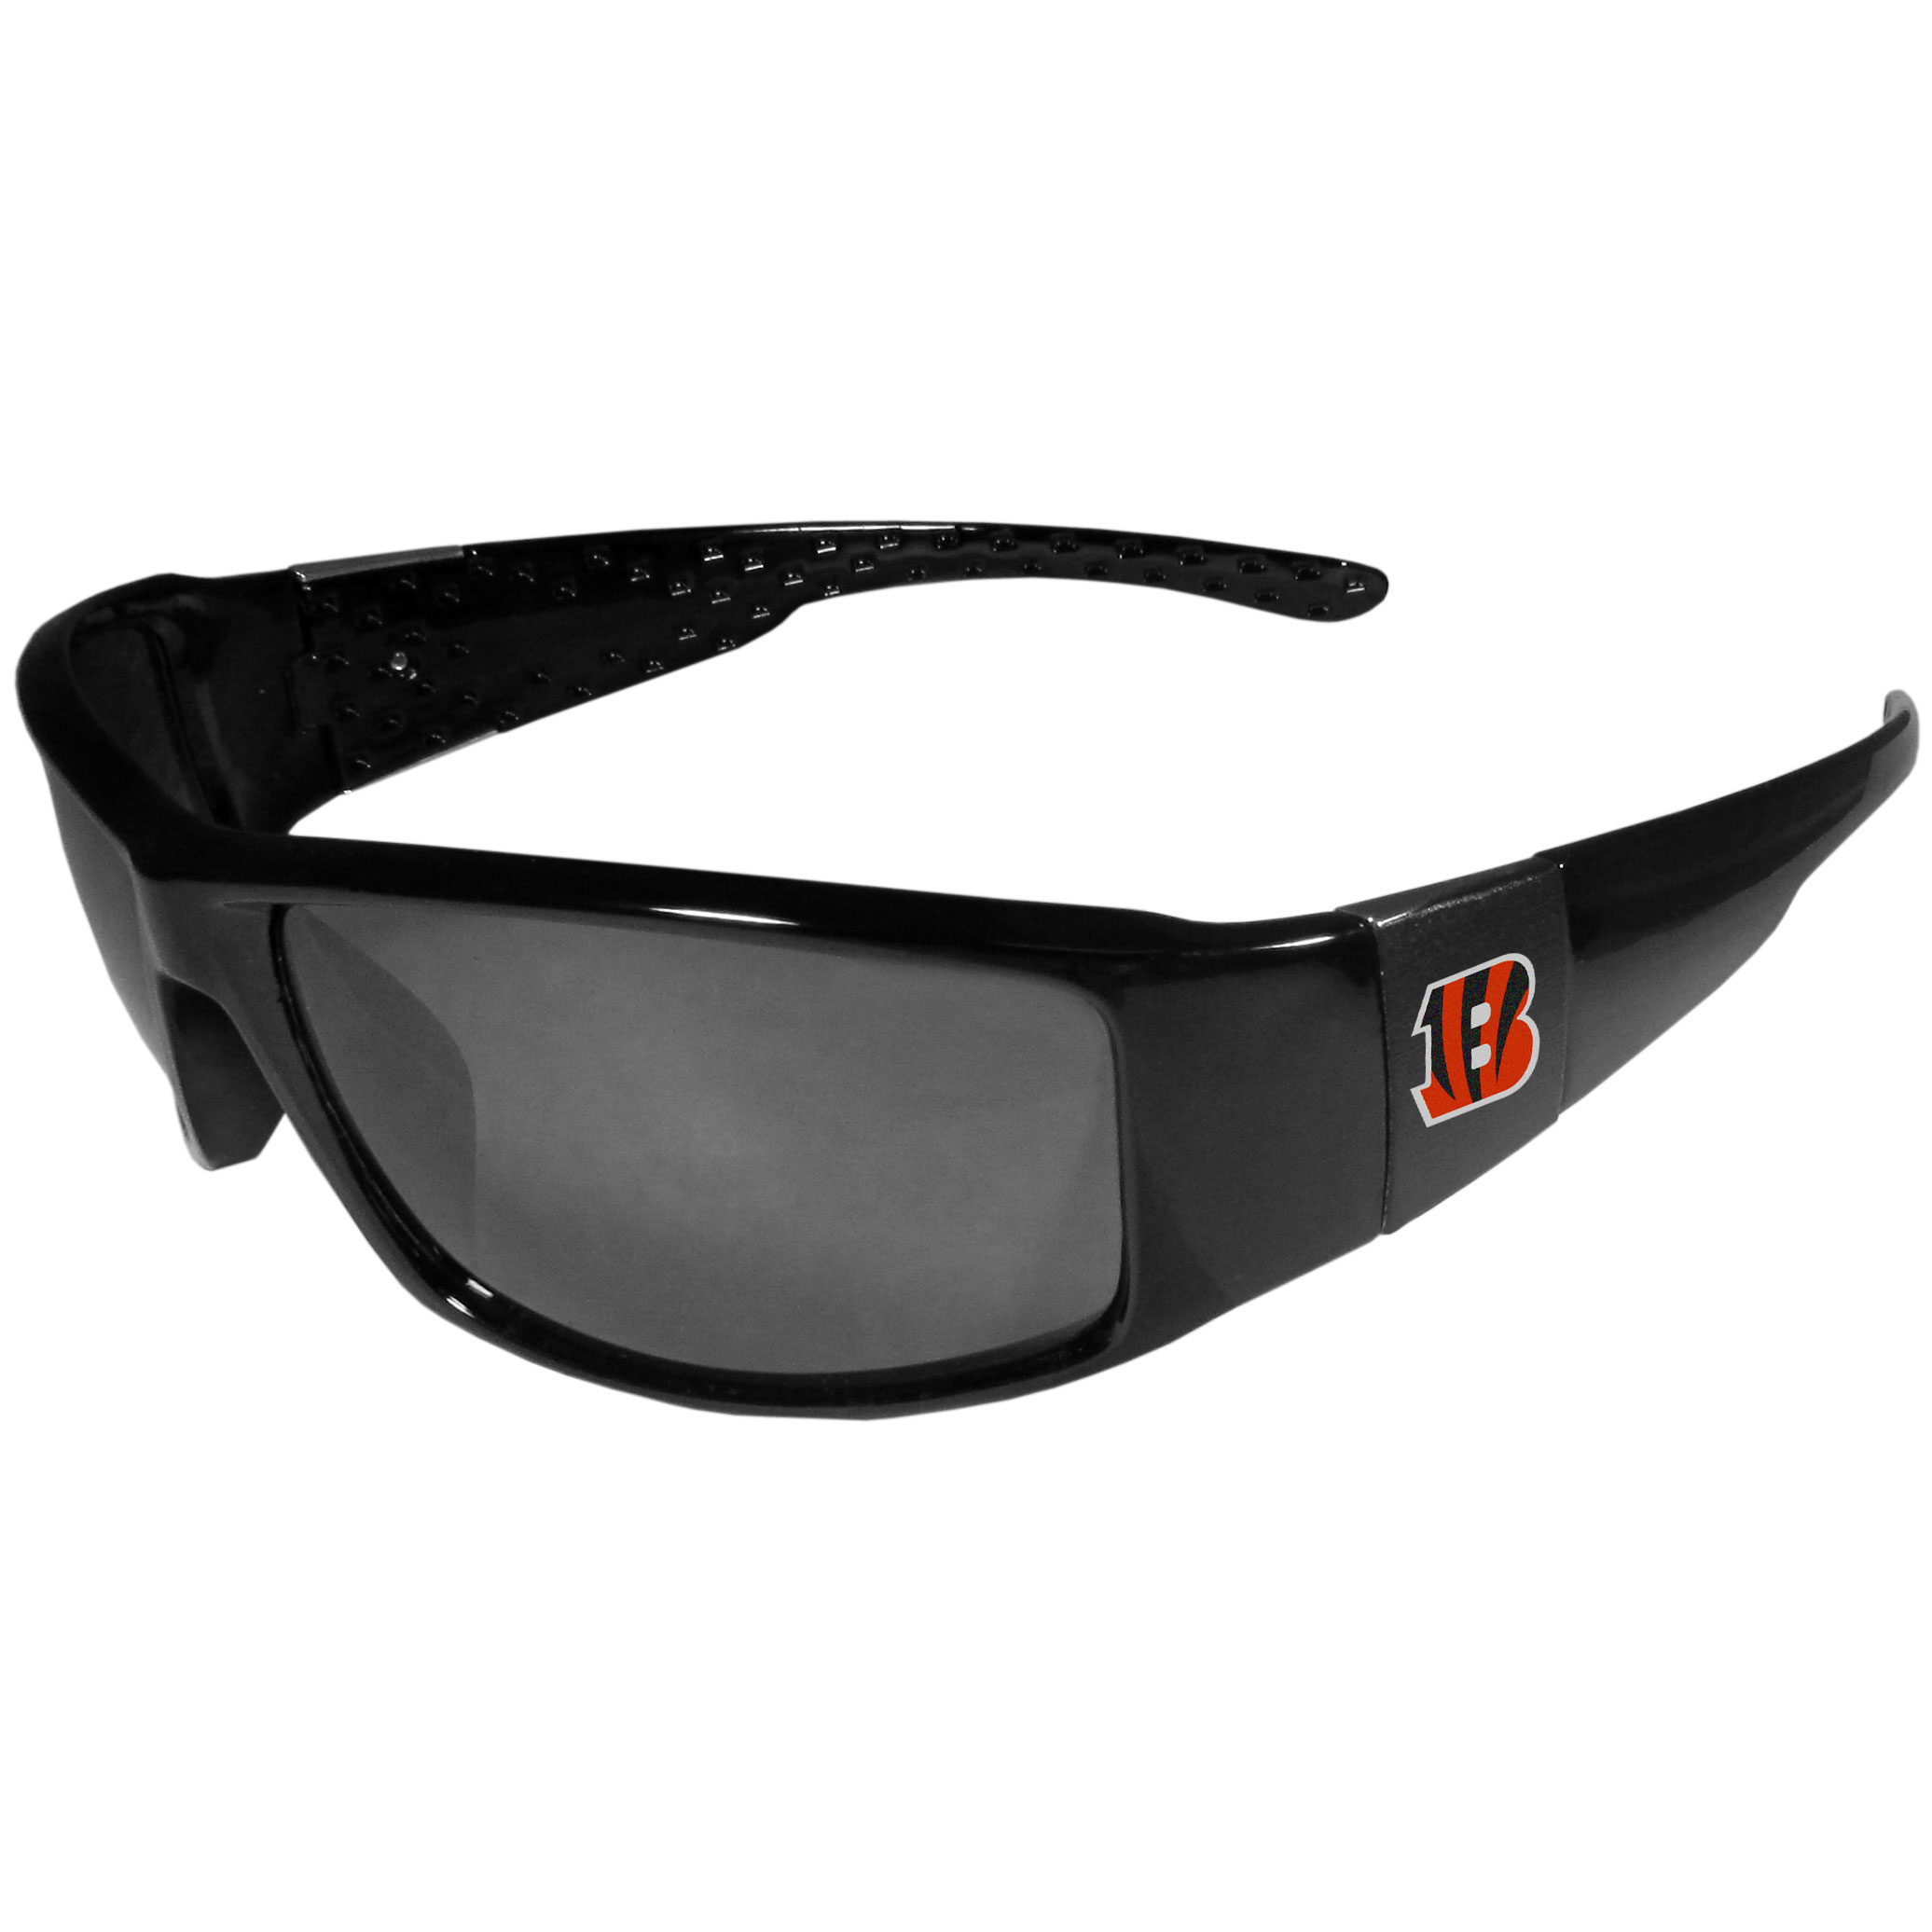 Cincinnati Bengals Black Wrap Sunglasses - These designer inspired frames have a sleek look in all black with  Cincinnati Bengals shields on each arm with a printed logo. The shades are perfect for any outdoor activity like; golfing, driving, hiking, fishing or cheering on the team at a tailgating event or at a home game day BBQ with a lens rating of 100% UVA/UVB for maximum UV protection. The high-quality frames are as durable as they are fashionable and with their classic look they are the perfect fan accessory that can be worn everyday for every occasion.